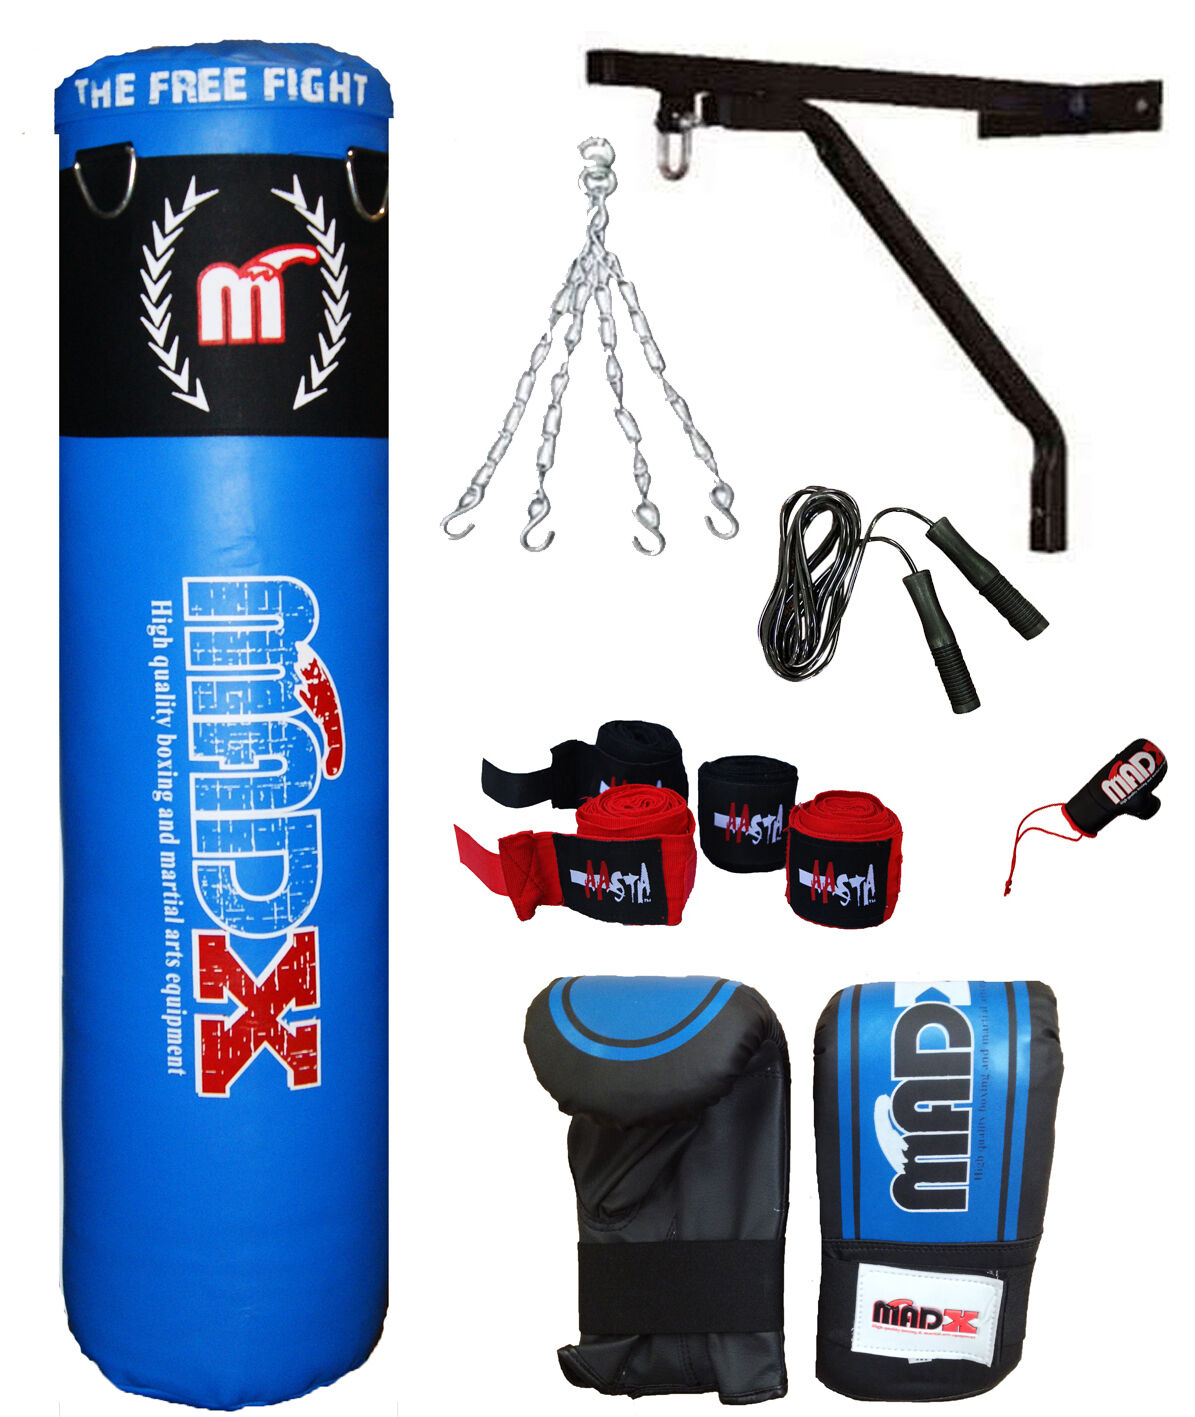 3-5Ft Filled Heavy Punch Bag Custom Build Set,Chains,Bracket,Gloves,MMA kick bag